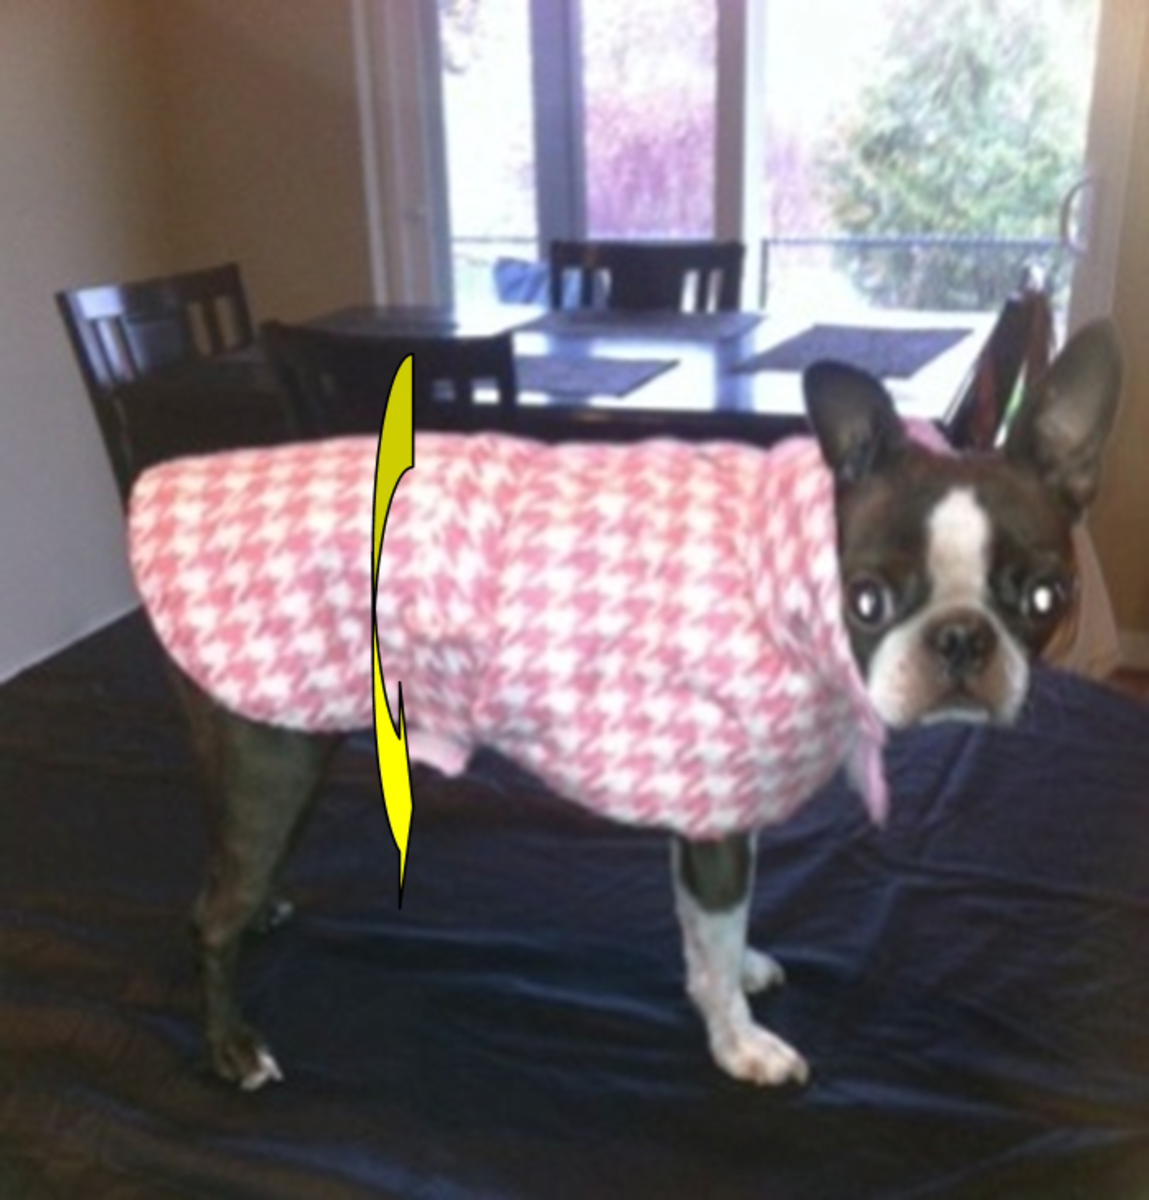 Boston terriers are known for their trim waistlines.